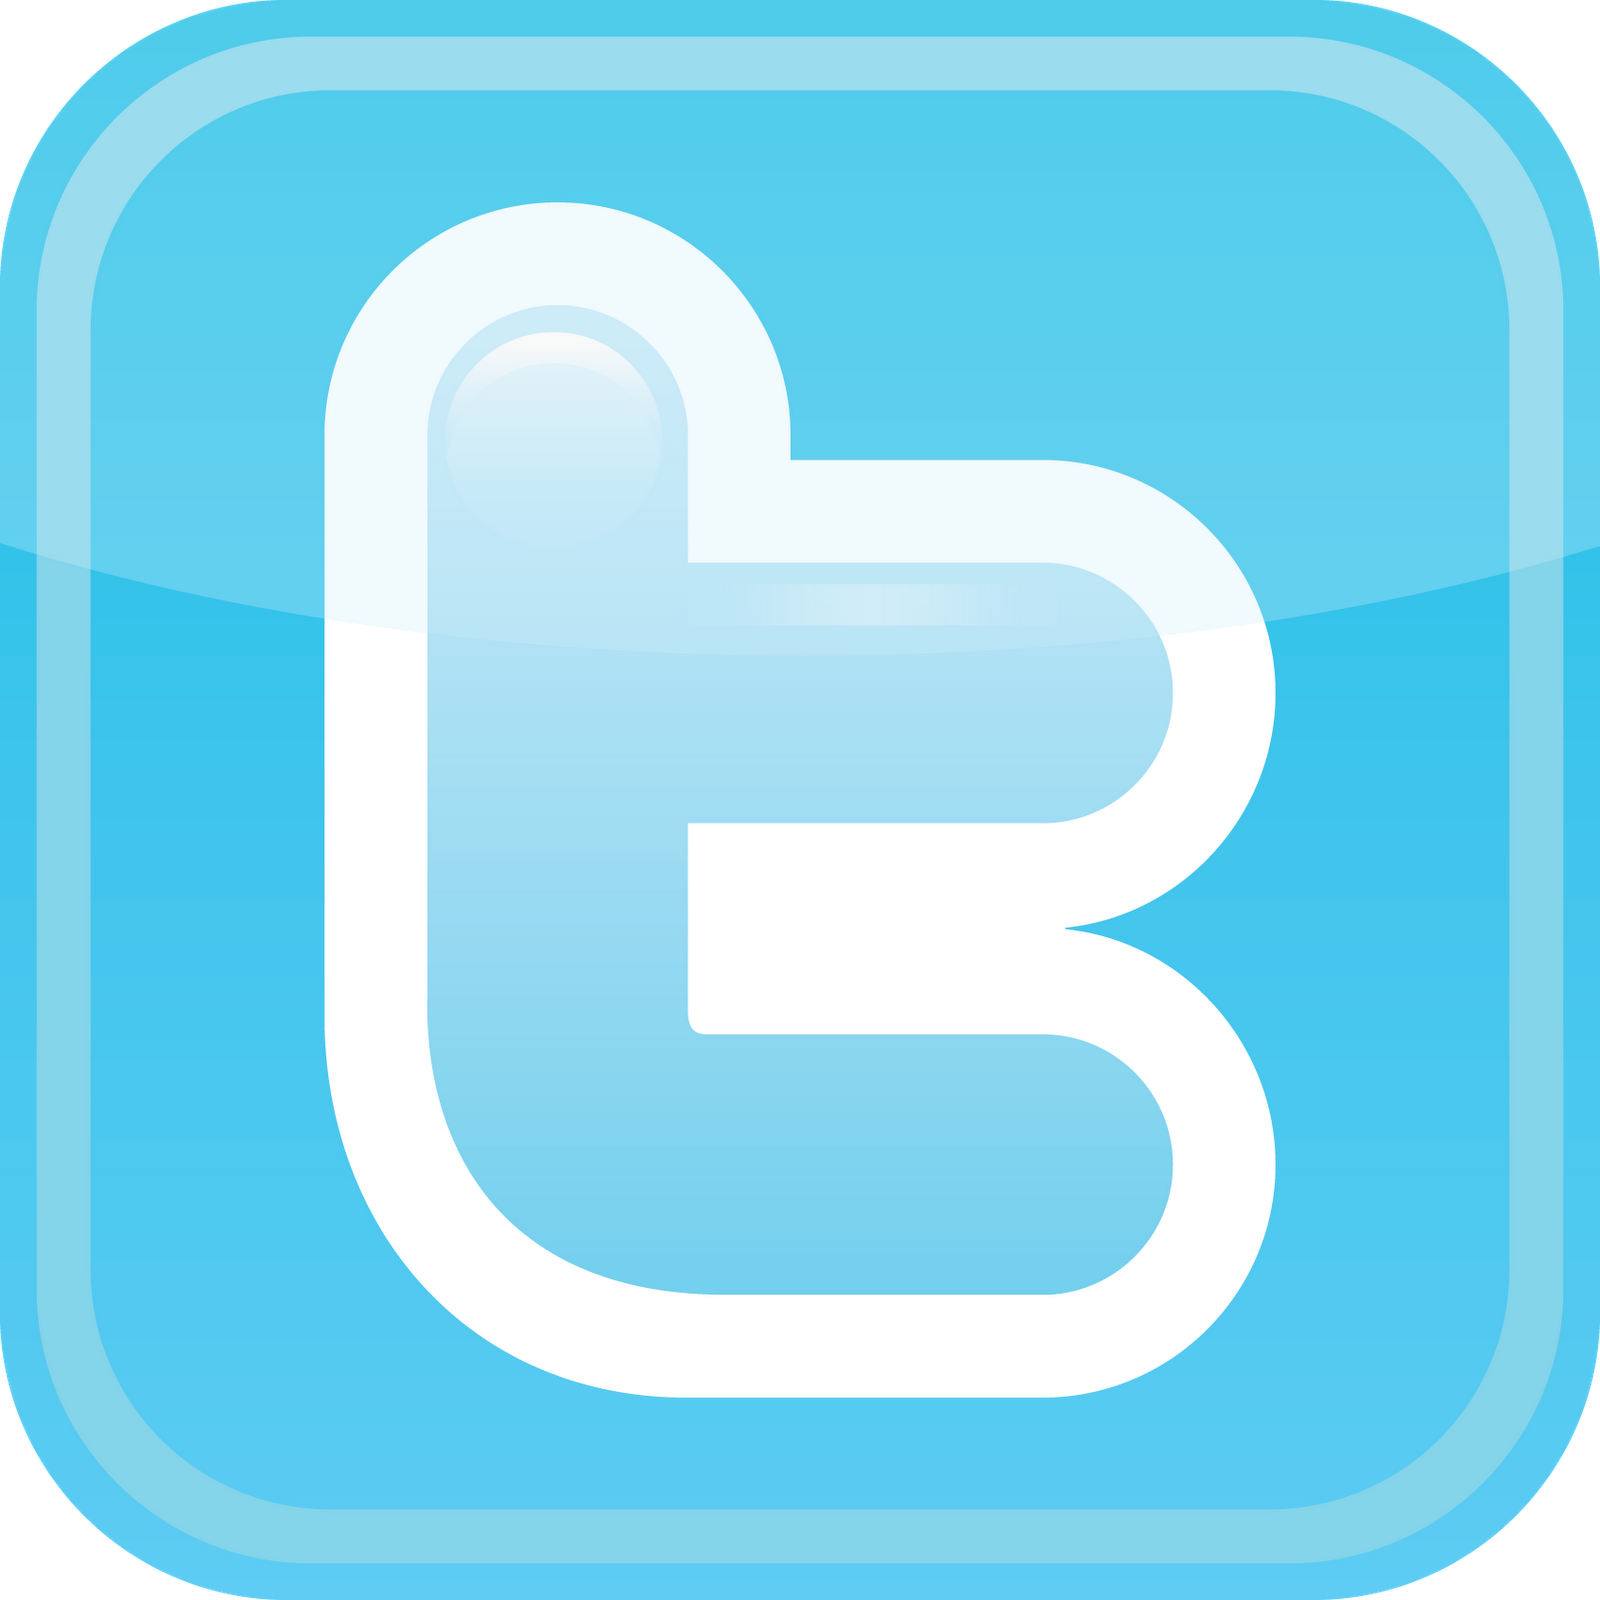 transparent-twitter-logo-icon